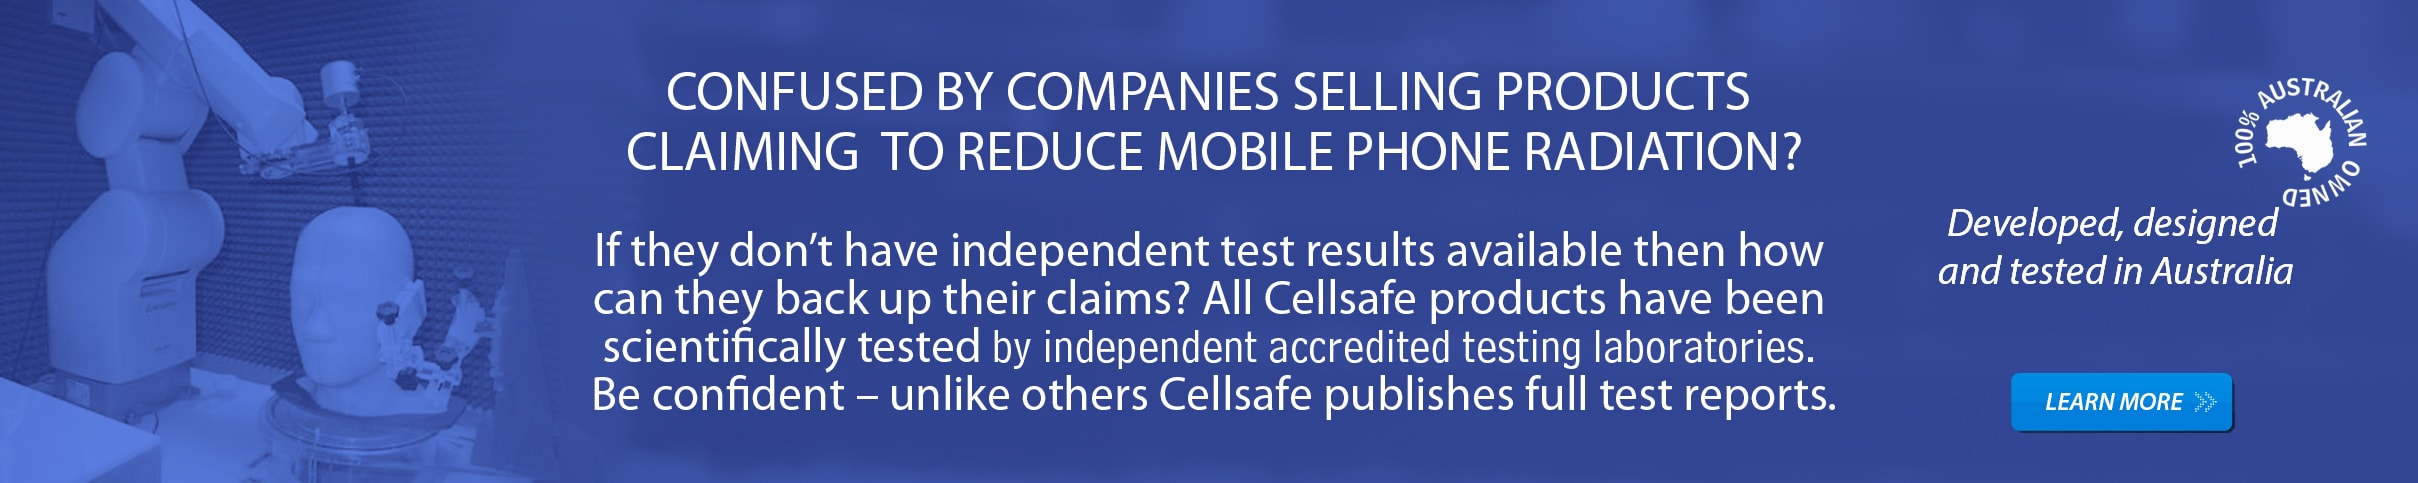 mobile-phone-manufacturers-selling